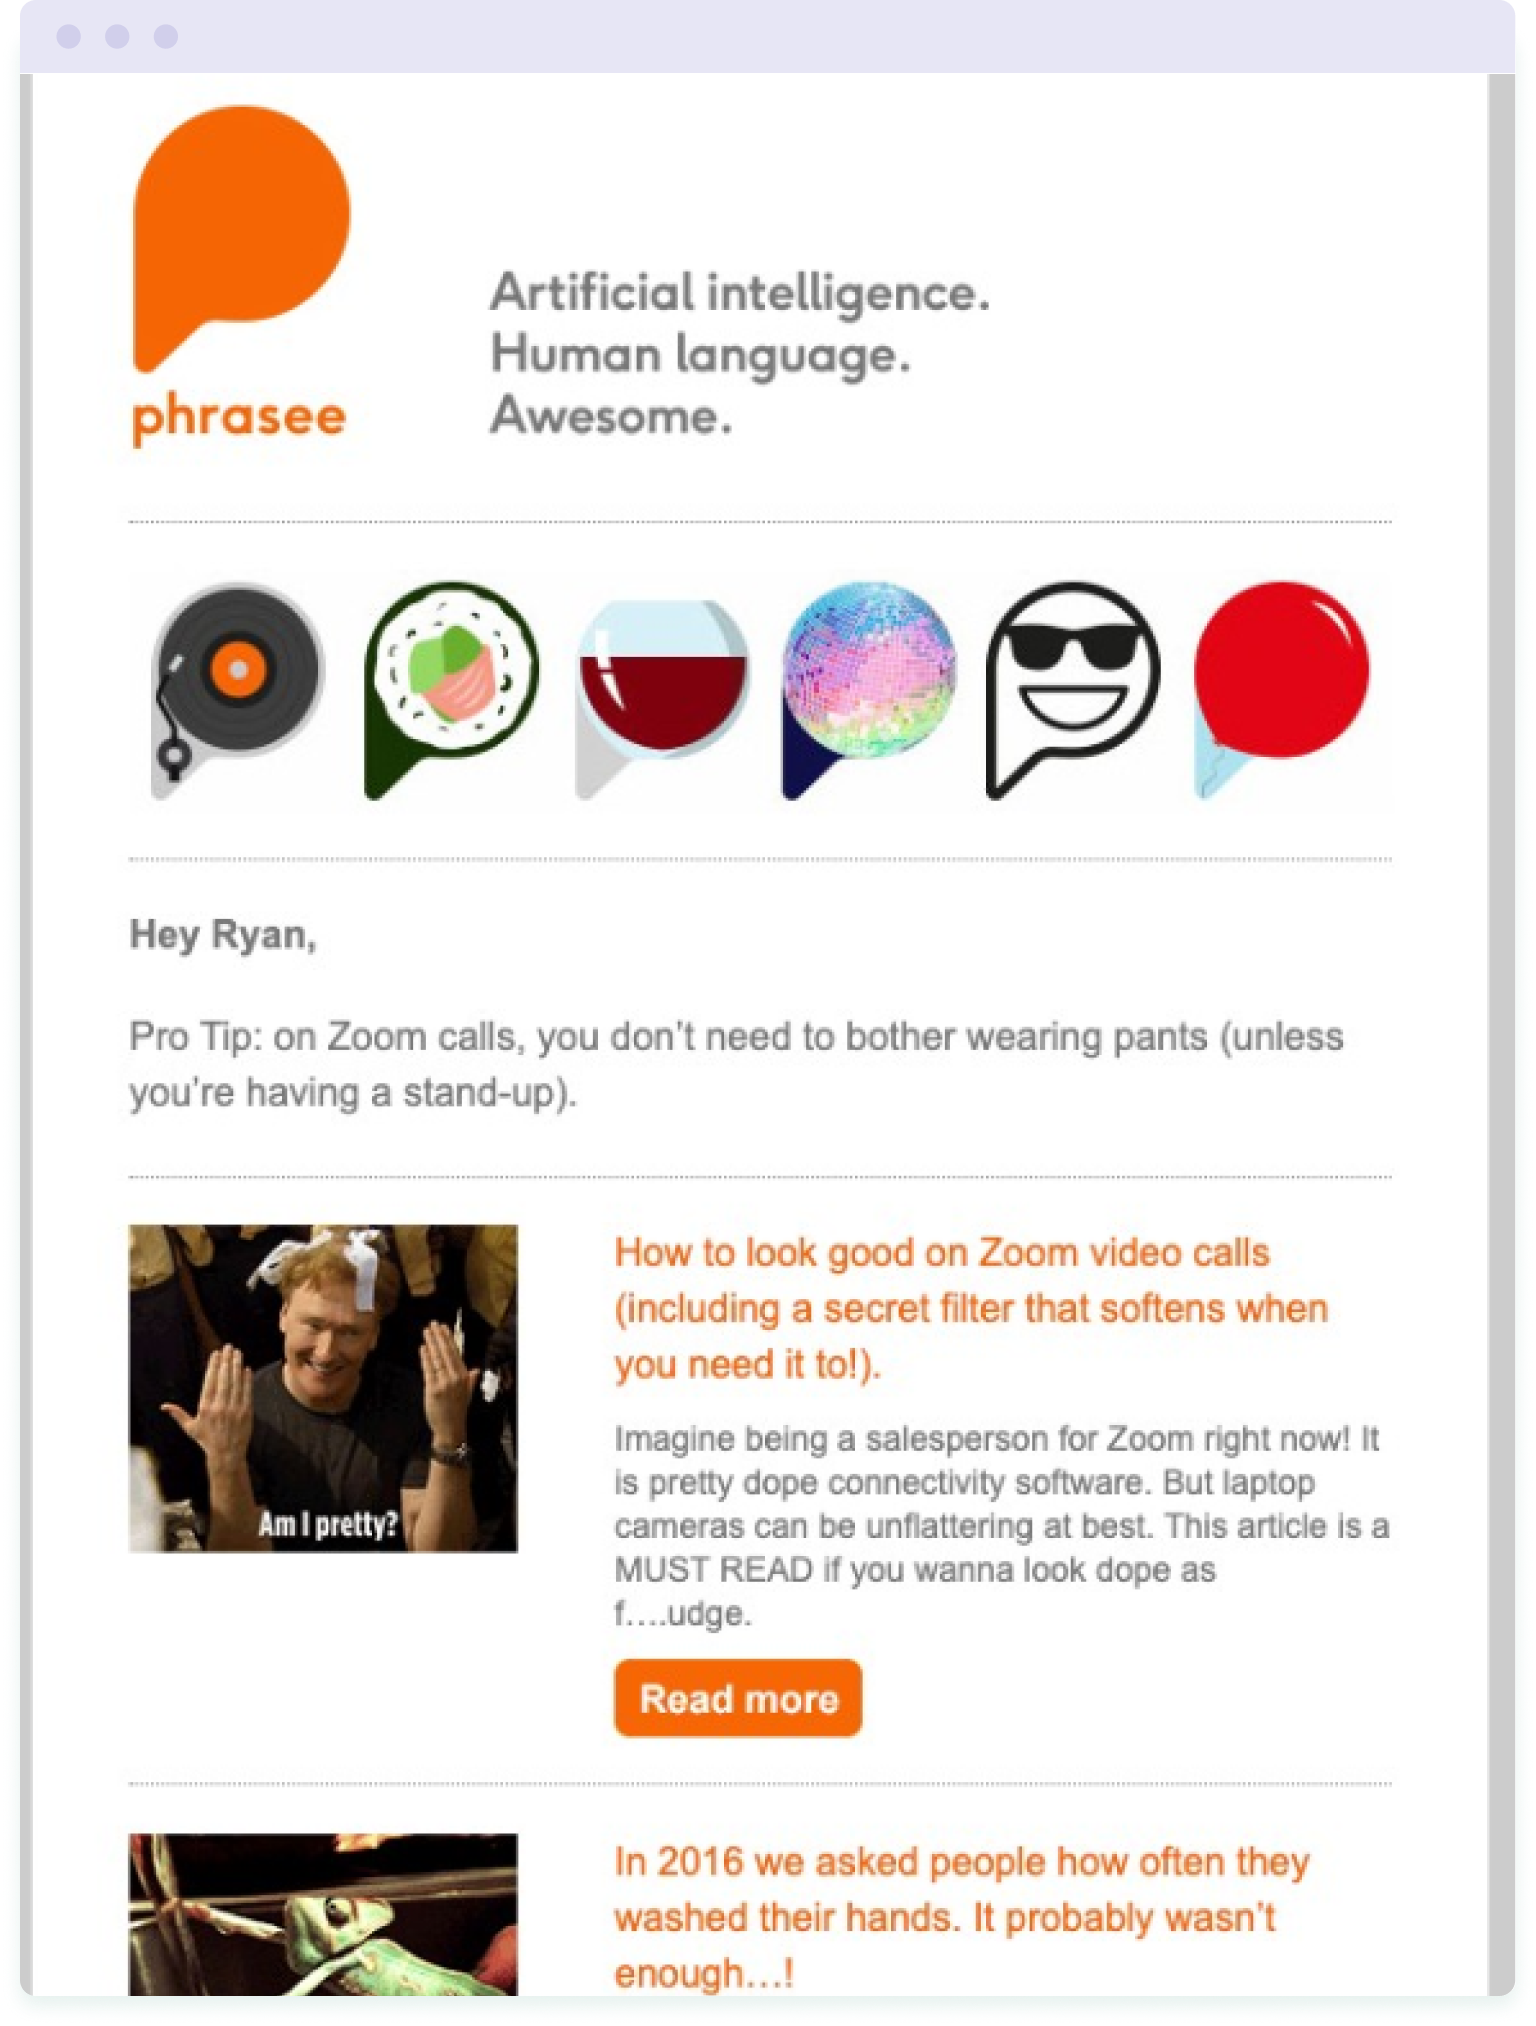 An email from AI software company Phrasee demonstrating how to use humour in email marketing